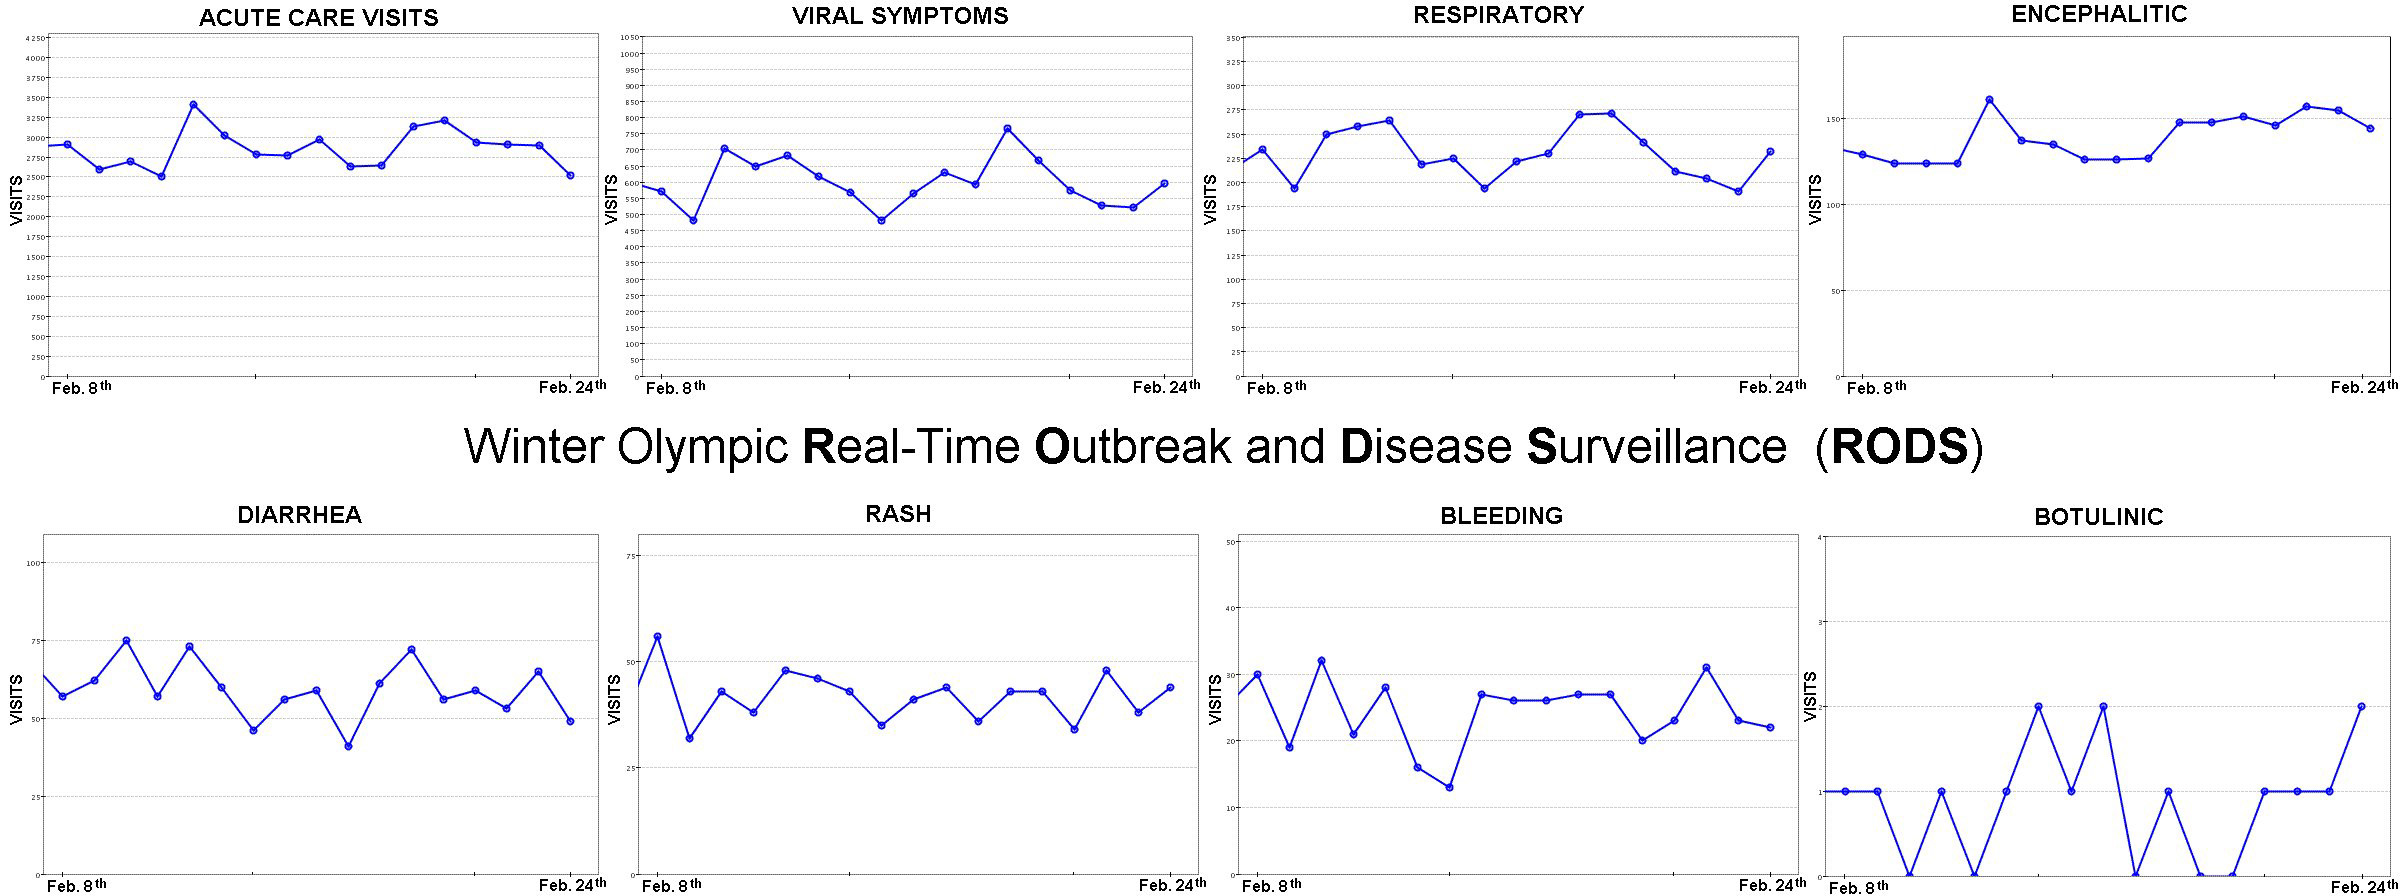 A series of eight graphs  showing day-by-day total acute-care visits during the Olympics as well as visits broken down by symptom.